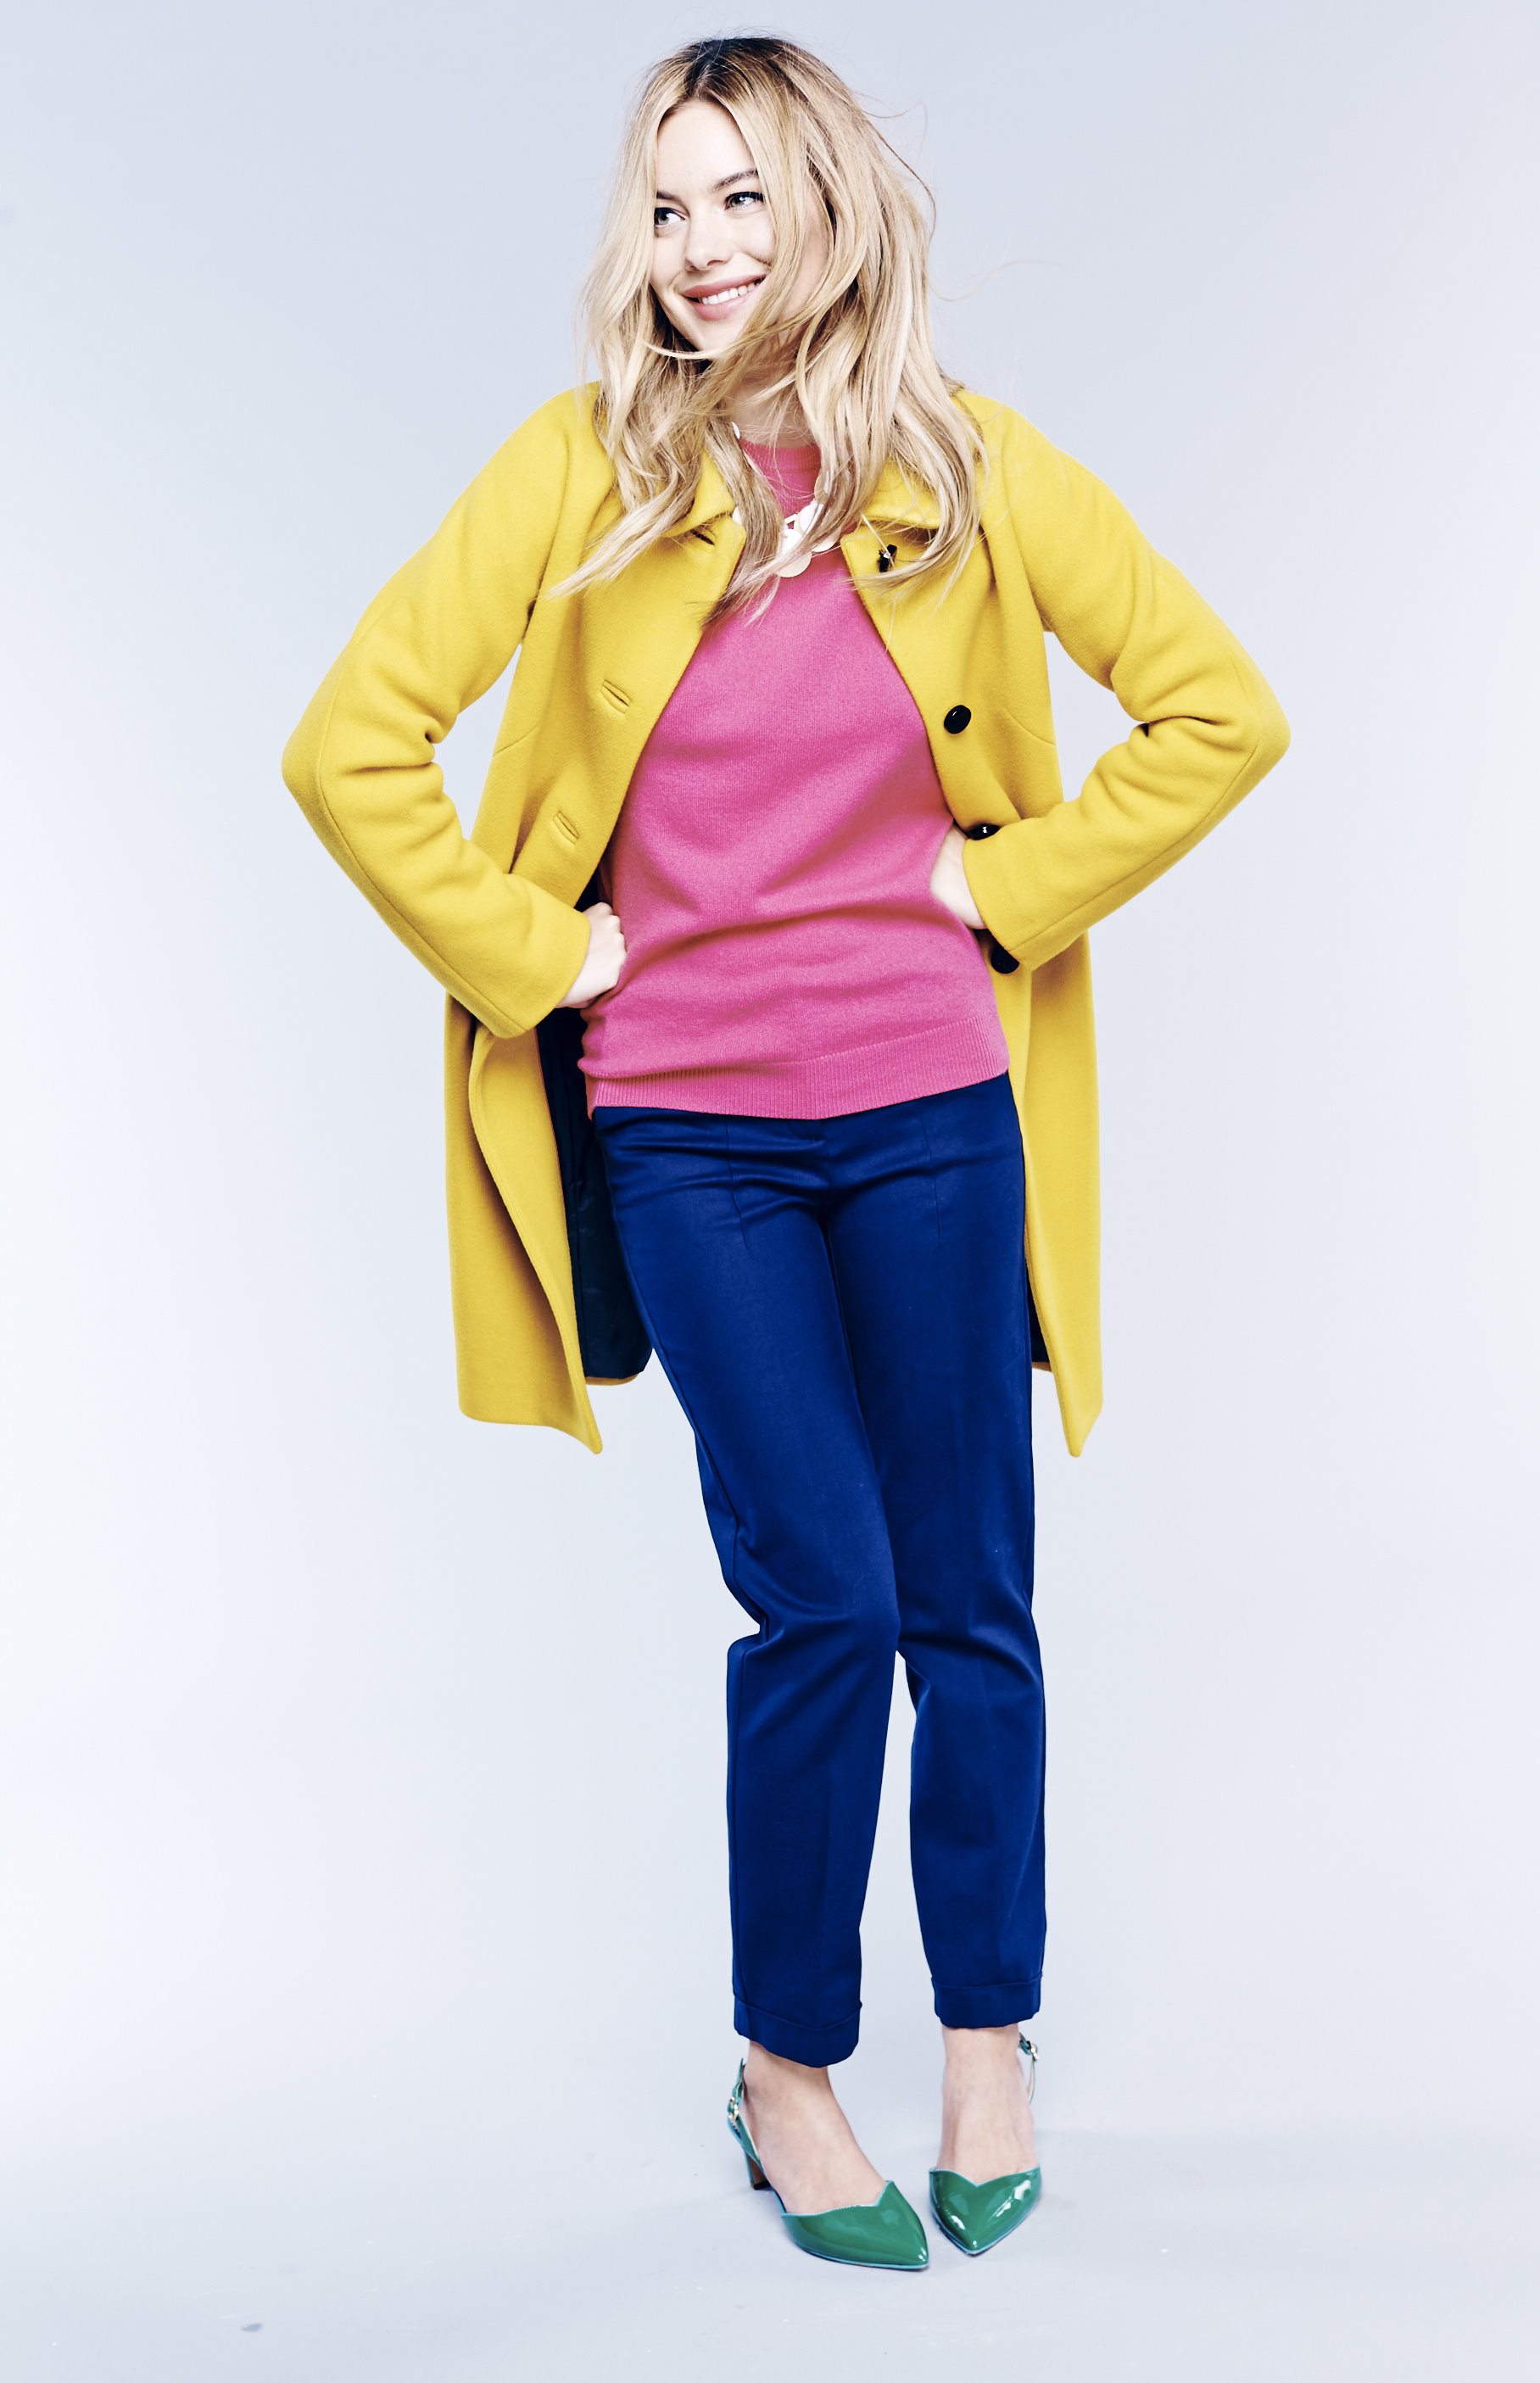 Boden ss 15 cr 10 bodenss15cr image 23239977 for Boden yellow coat